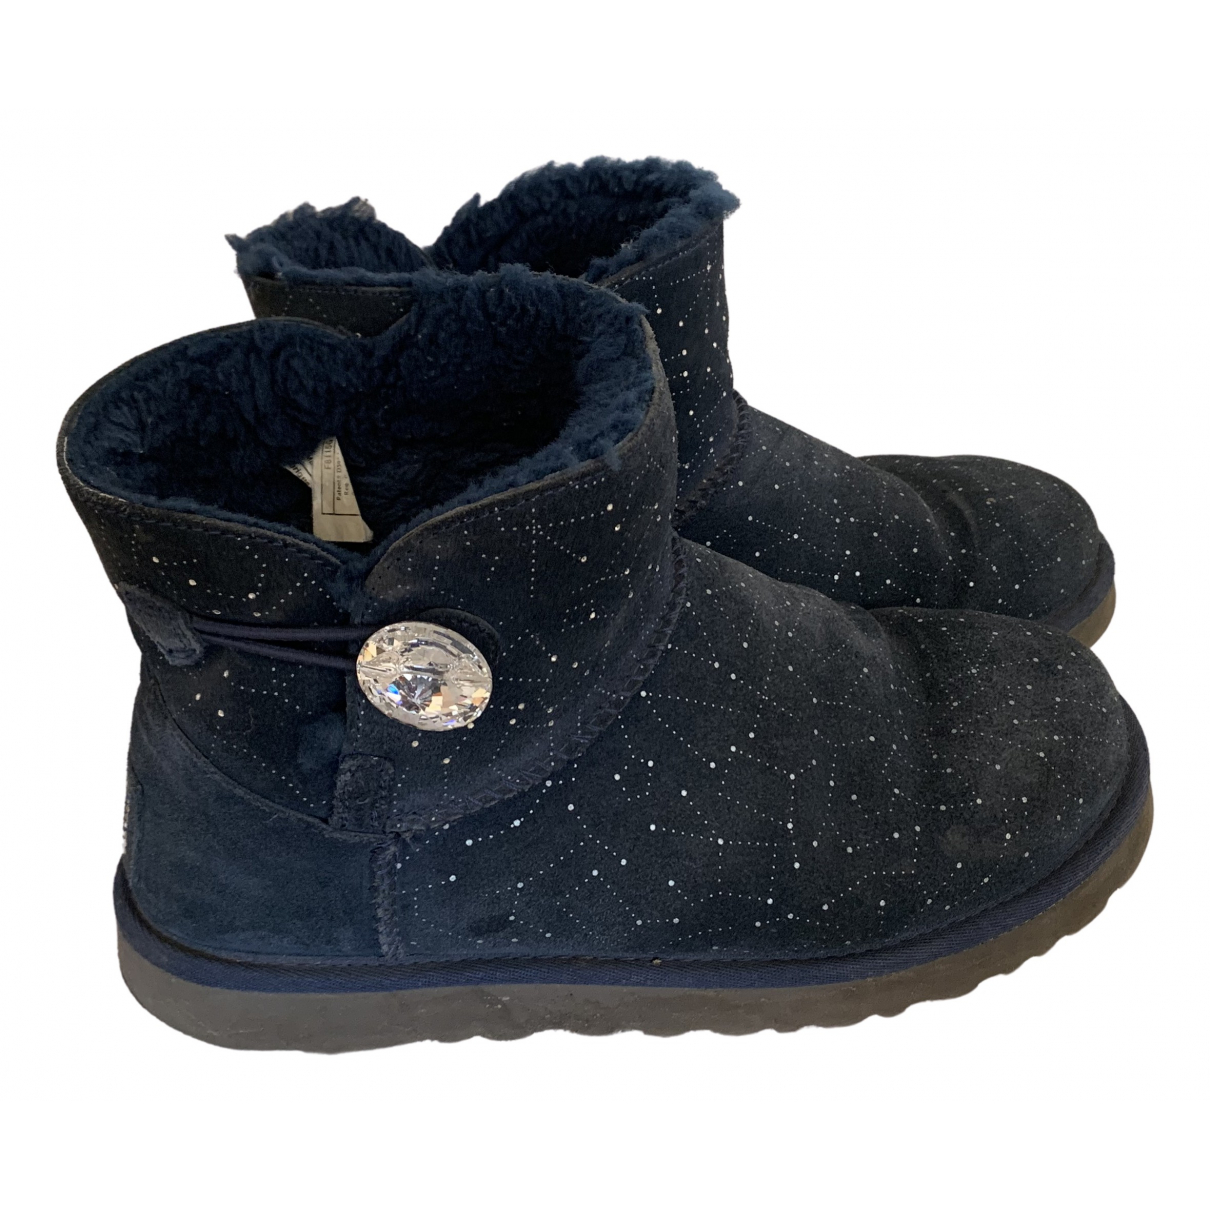 Ugg N Blue Leather Boots for Women 38 EU